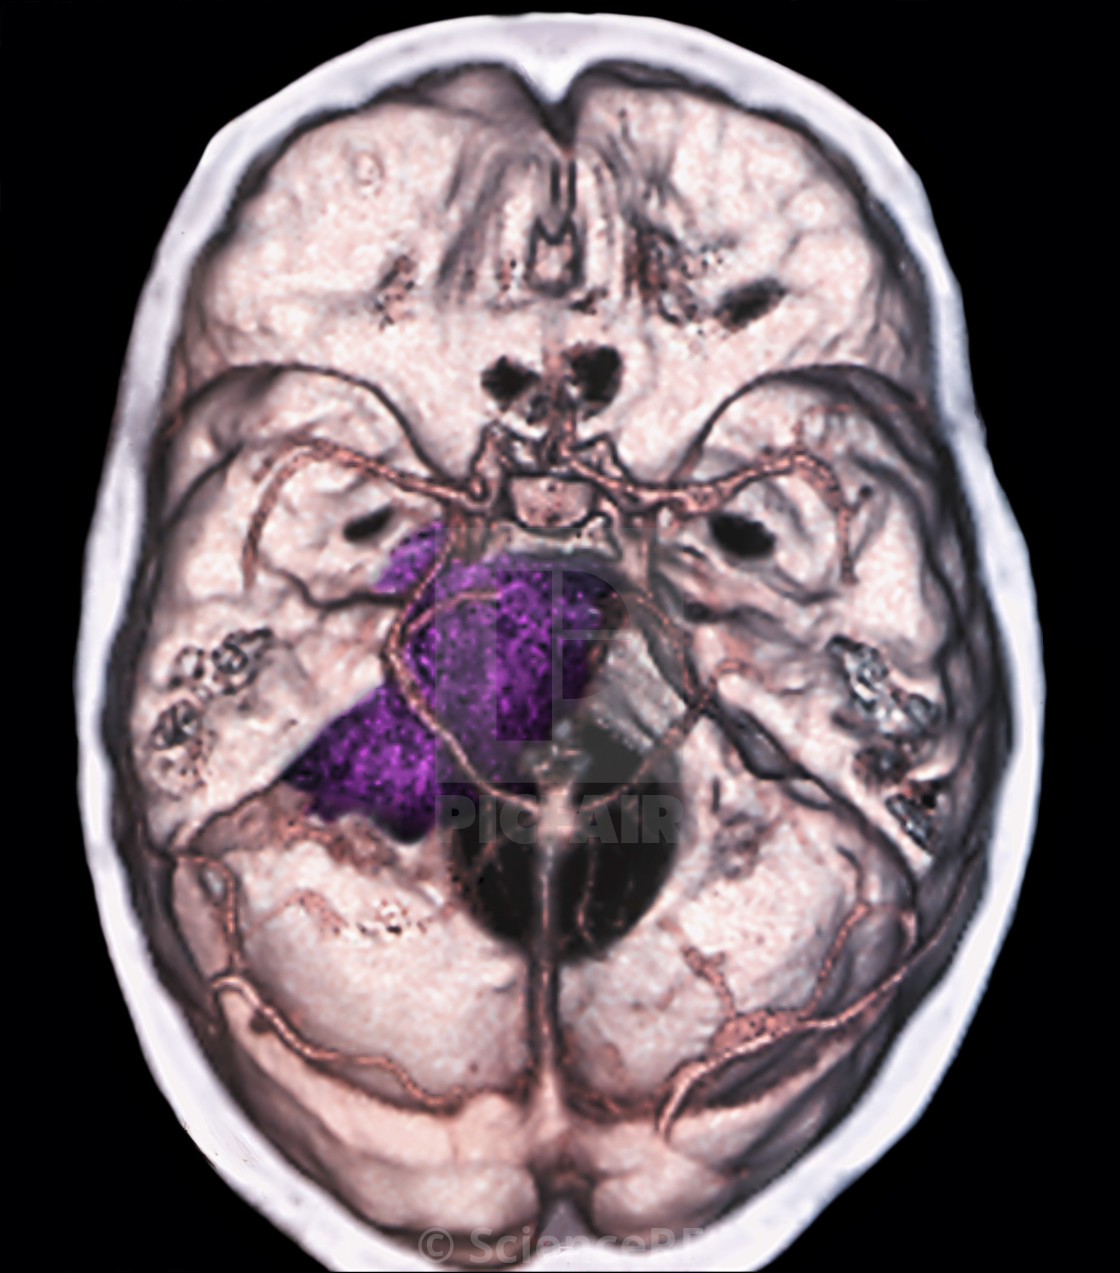 Benign brain tumour, CT scan - License for £39.00 on Picfair